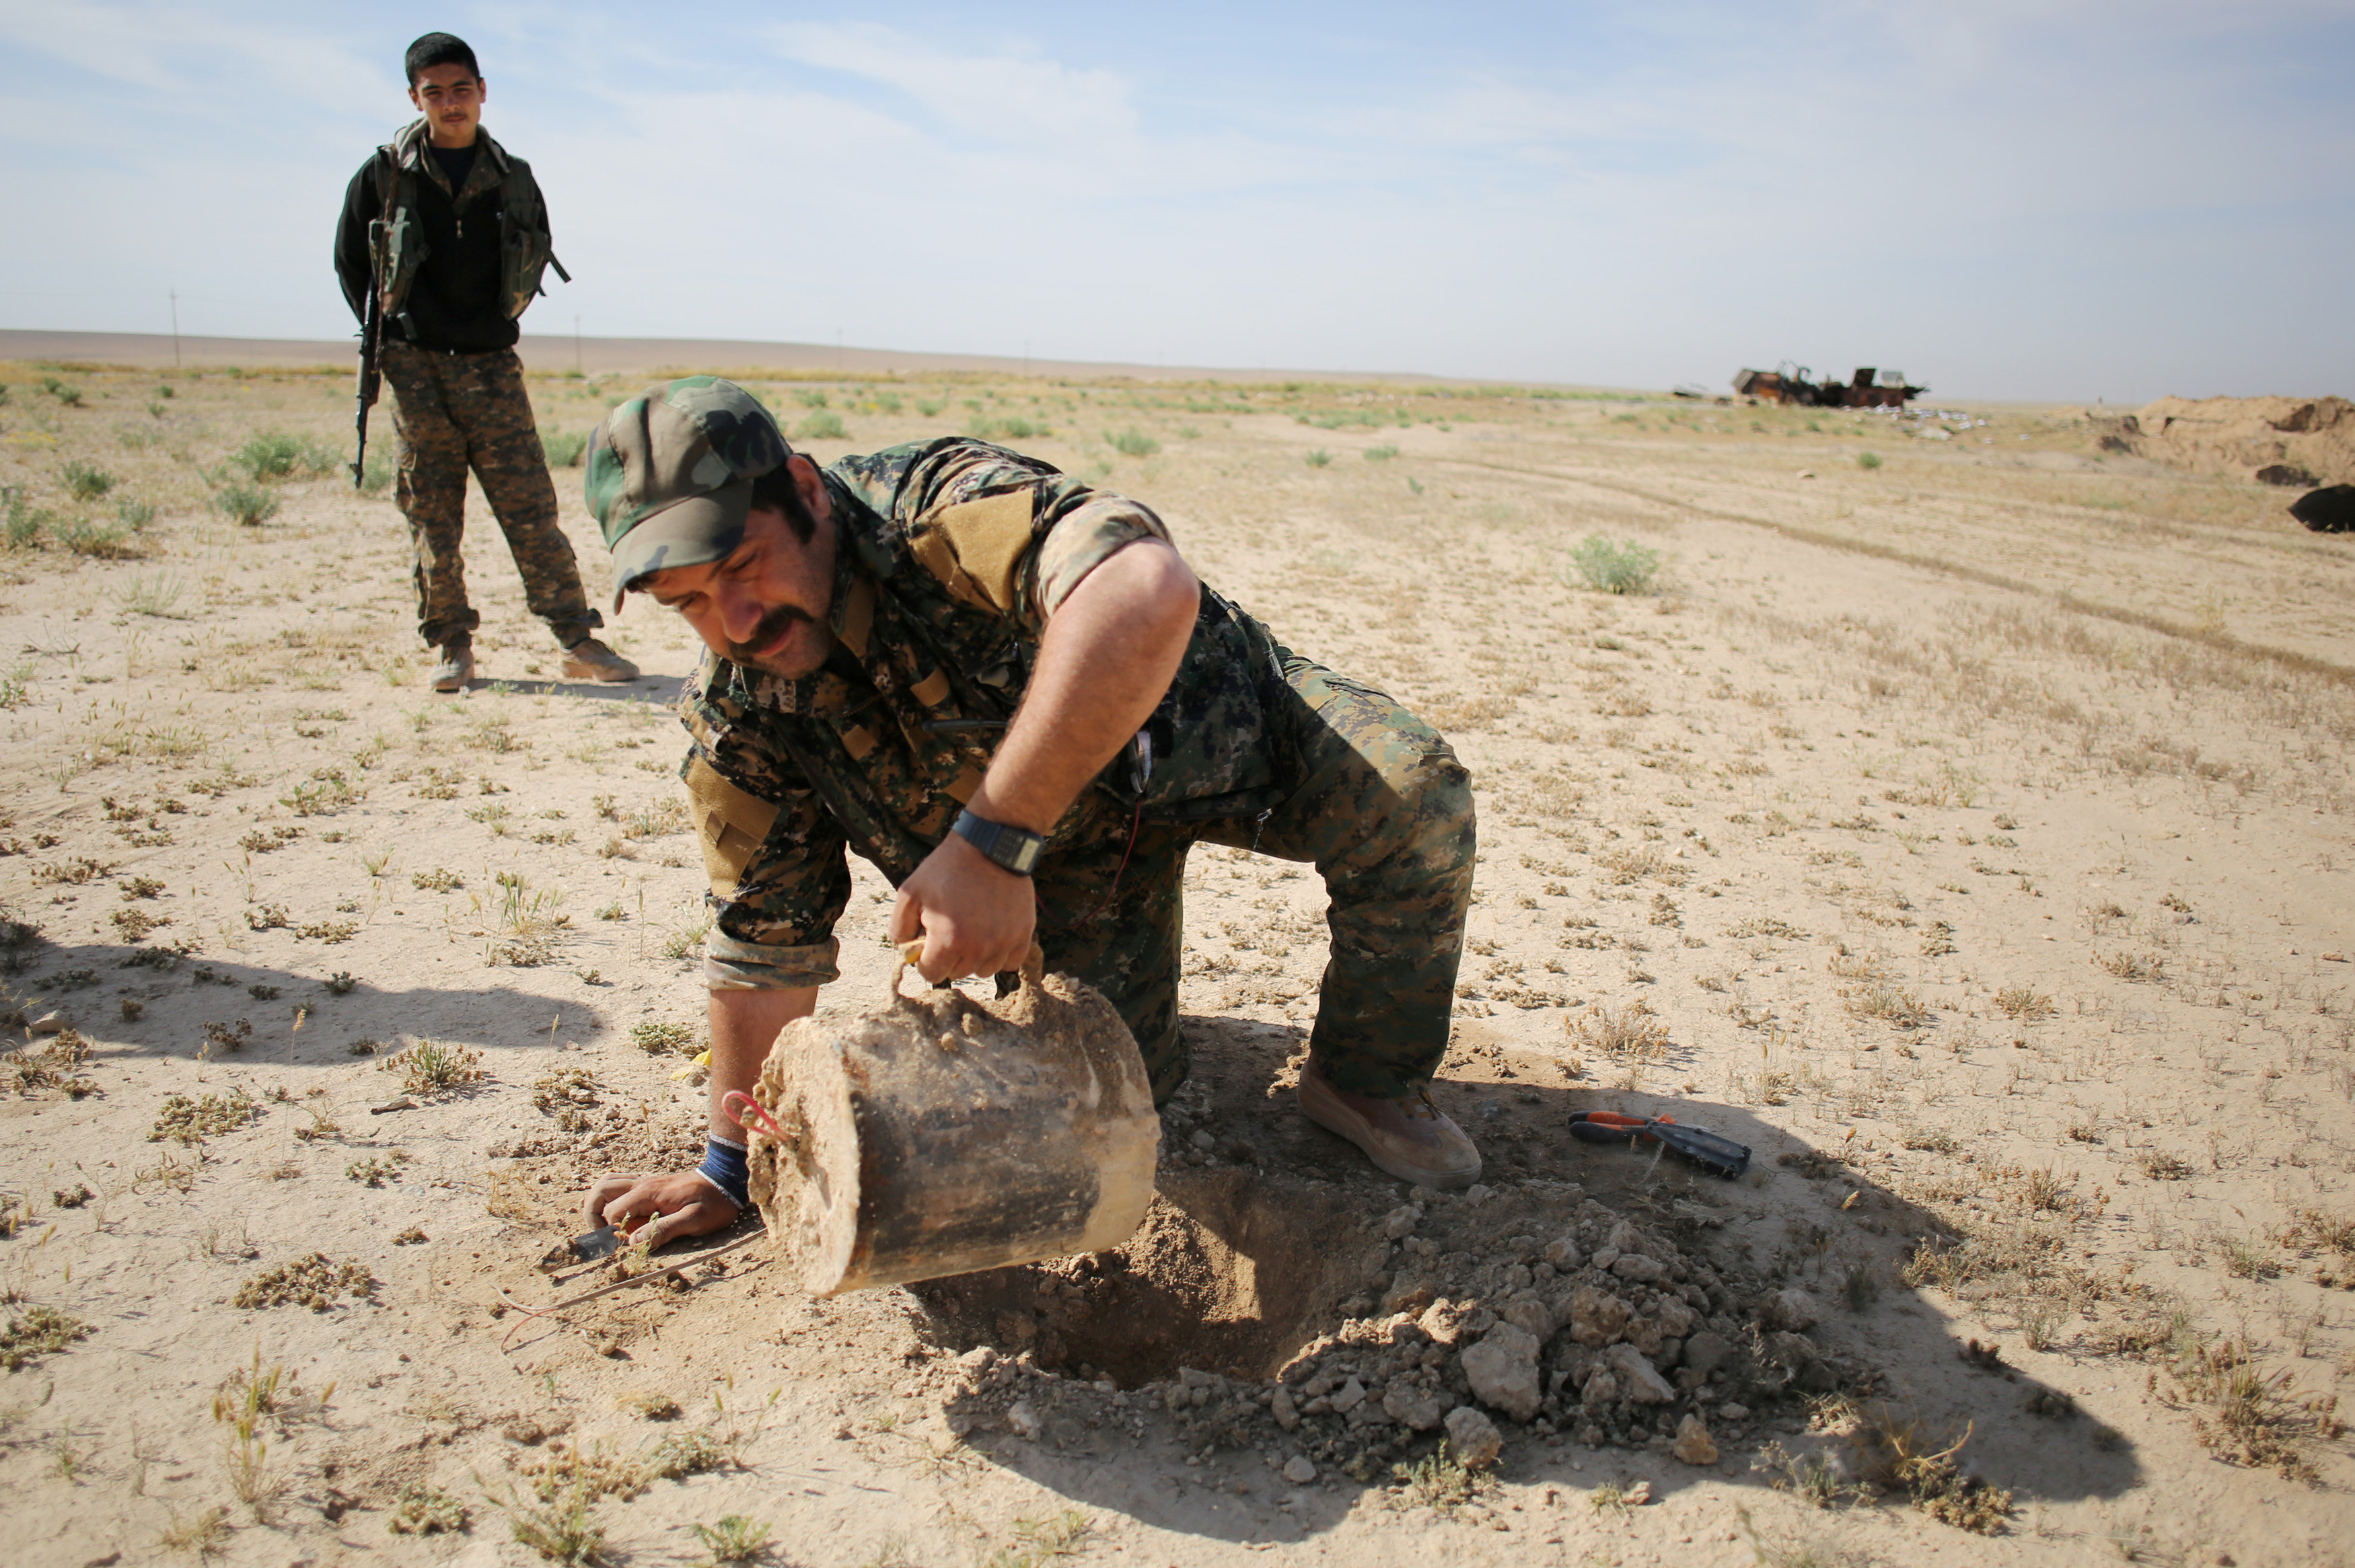 A 2016 file picture shows a member of the PKK-affiliated Yazidi militia, Sinjar Resistance Units, disarming an improvised explosive device near the village of Umm al-Dhiban in northern Iraq. (Reuters)